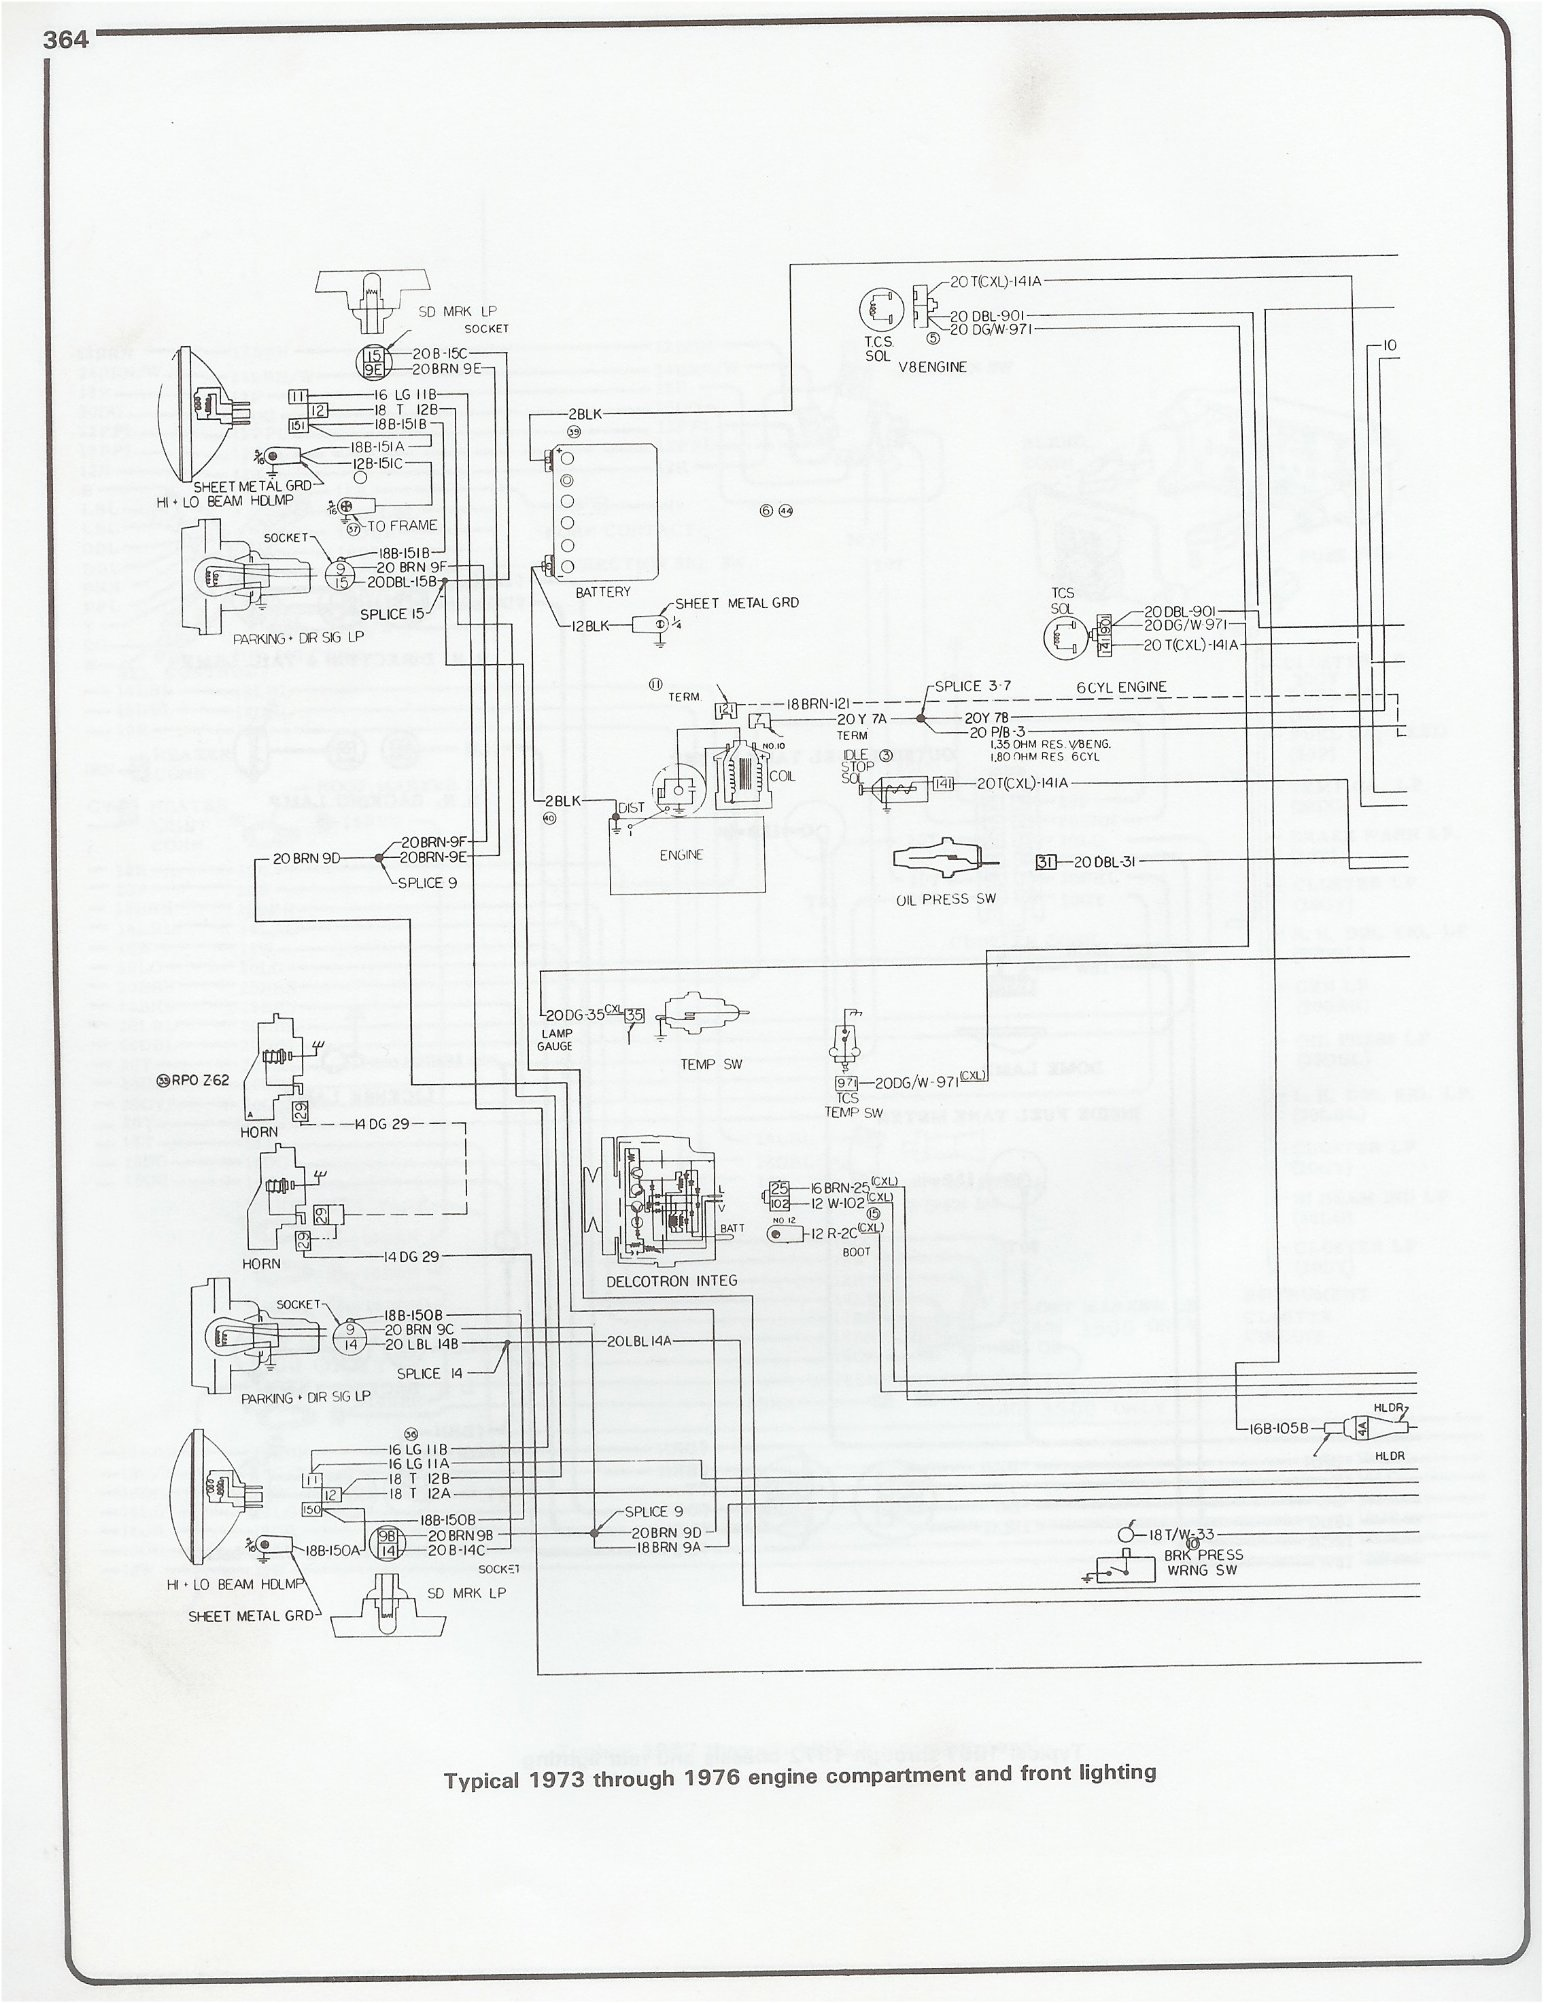 Complete 73 87 Wiring Diagrams 2000 Chevy Silverado Radio Diagram 76 Engine And Front Lighting